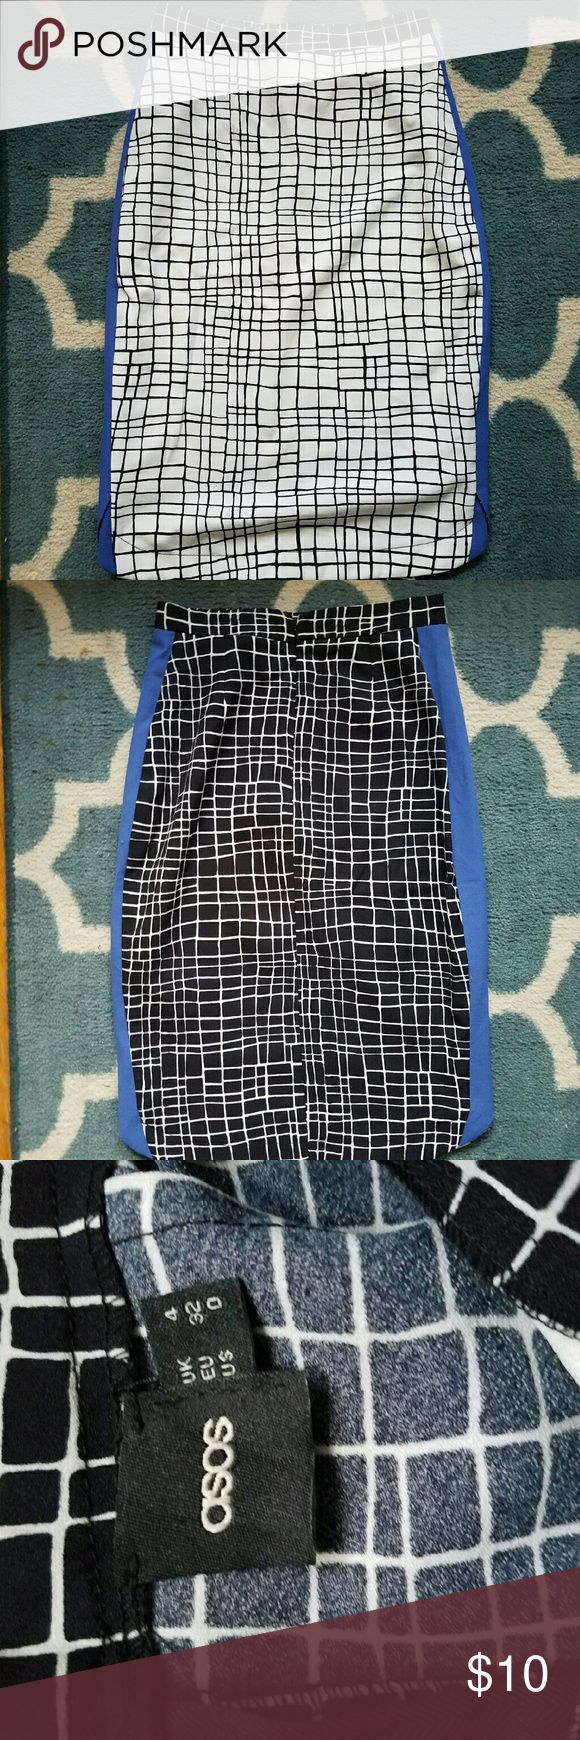 ASOS Grid Pencil Skirt This pencil skirt is from ASOS. The front has a white background with black lines and the back had a black background with white lines. There are blue panels on the side. This skirt is in good condition and has only been worn a couple times. ASOS Skirts Pencil